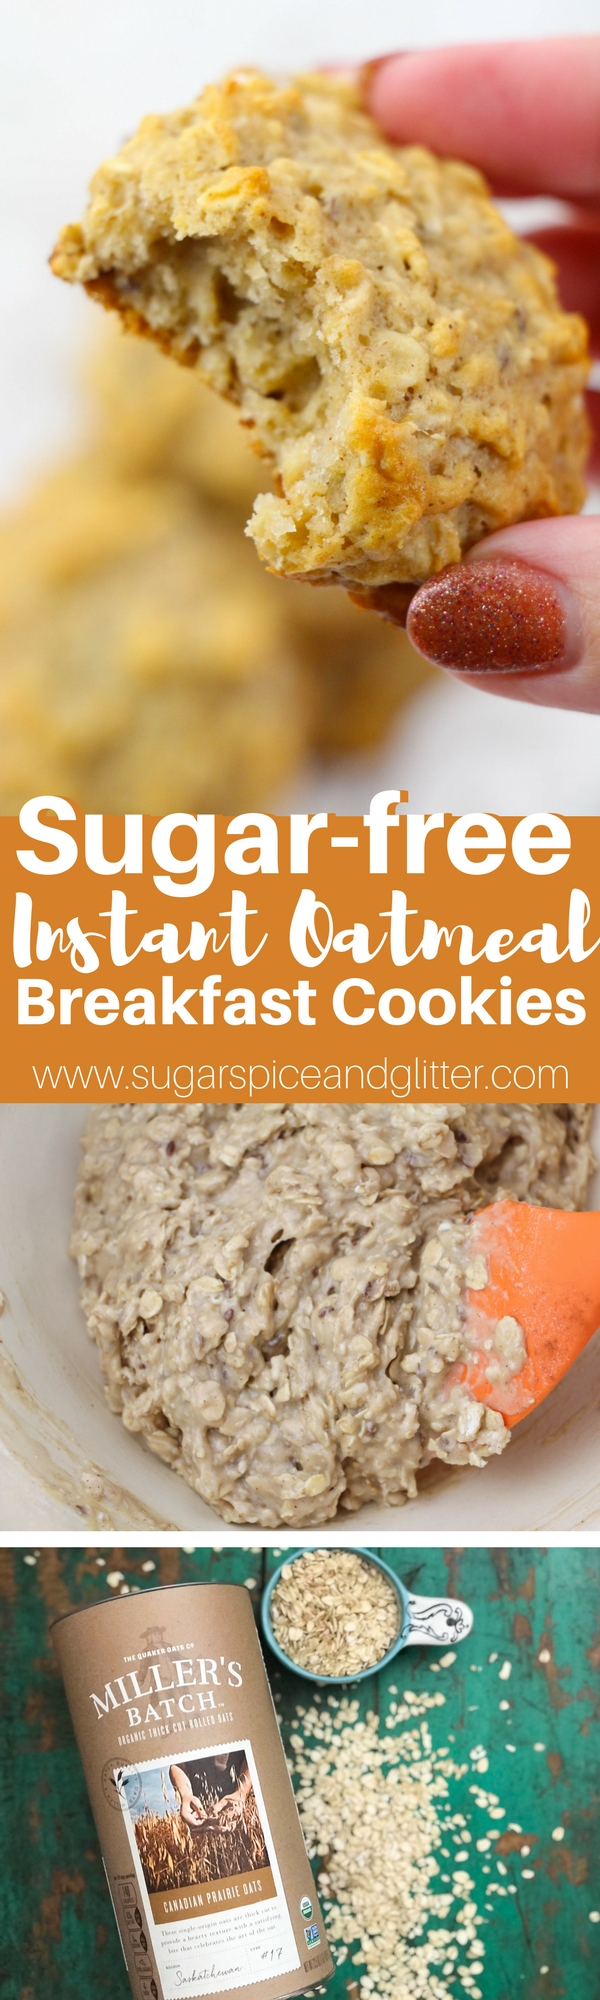 These Sugar-free Instant Oatmeal Breakfast Cookies are just sweet enough to feel like a treat (thanks to mineral-rich maple syrup) with a crunchy exterior and a chewy, cake-like texture that isn't too dense. Your kids won't believe you're letting them having cookies for breakfast!